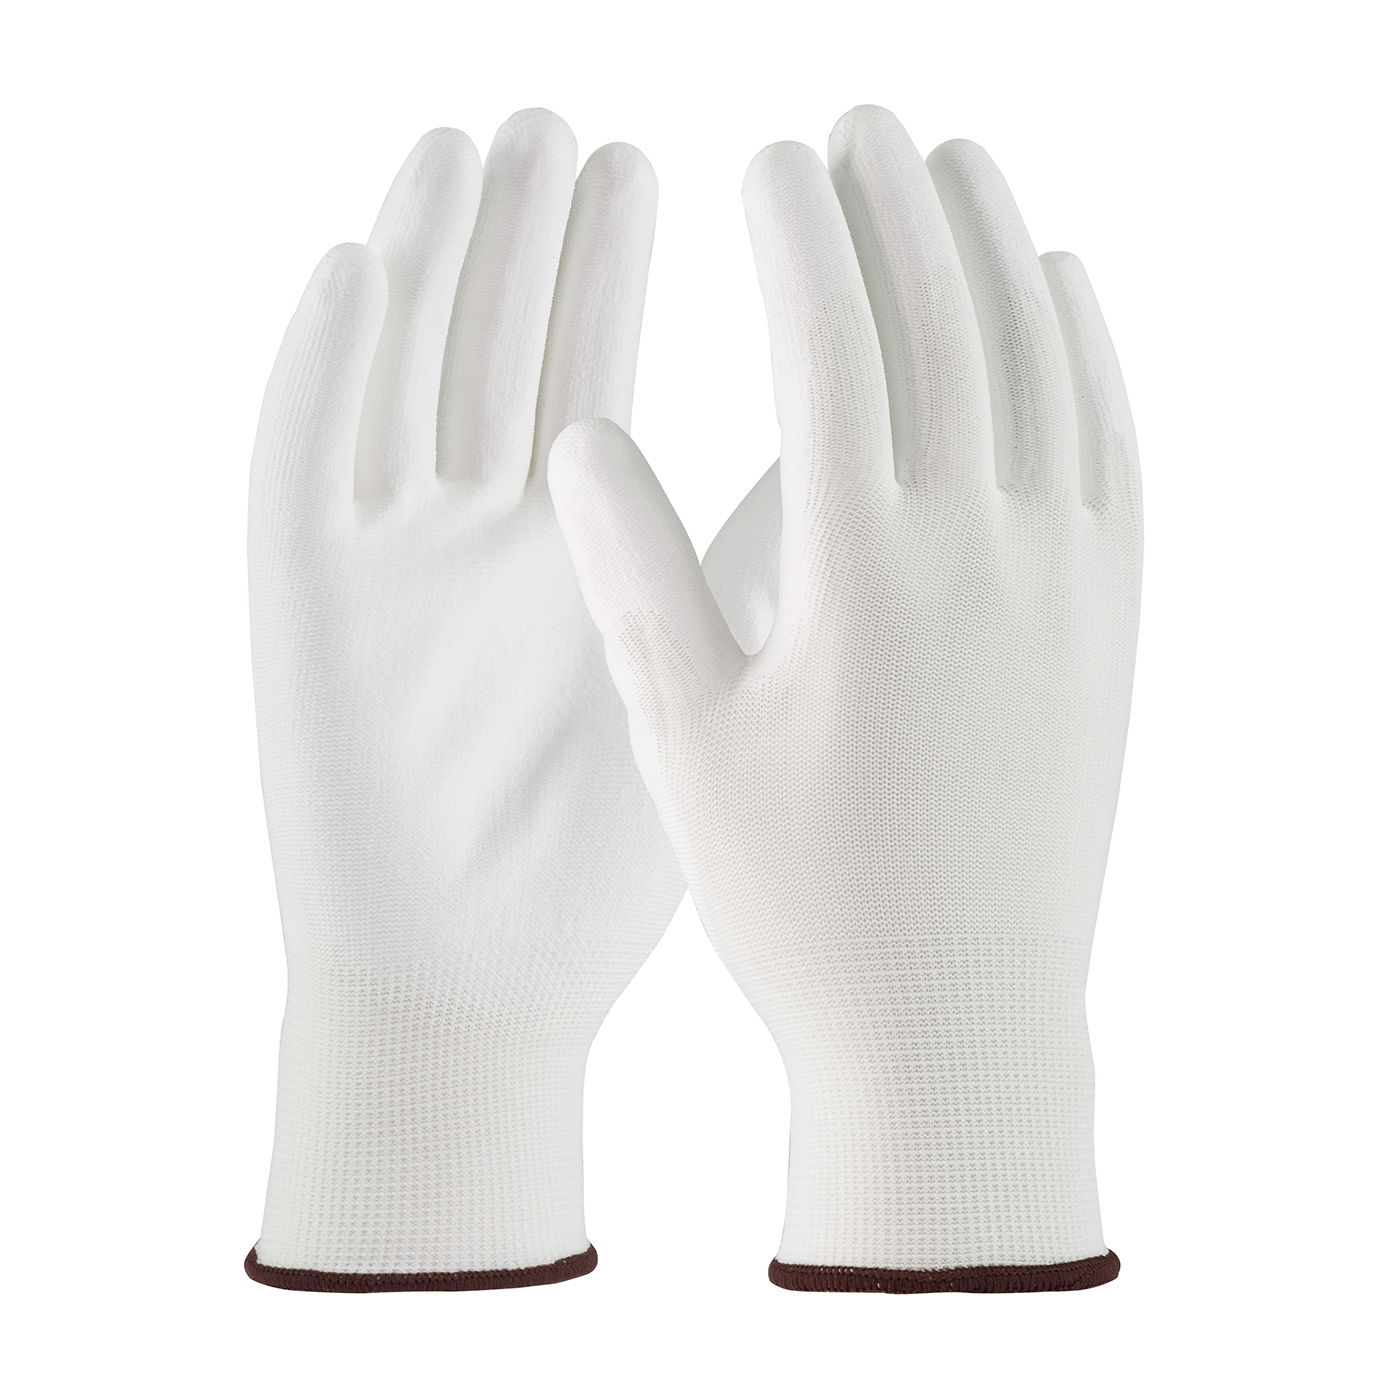 PIP® Seamless Knit White Polyester Glove with White Polyurethane Coated Smooth Grip on Palm & Fingers #33-115